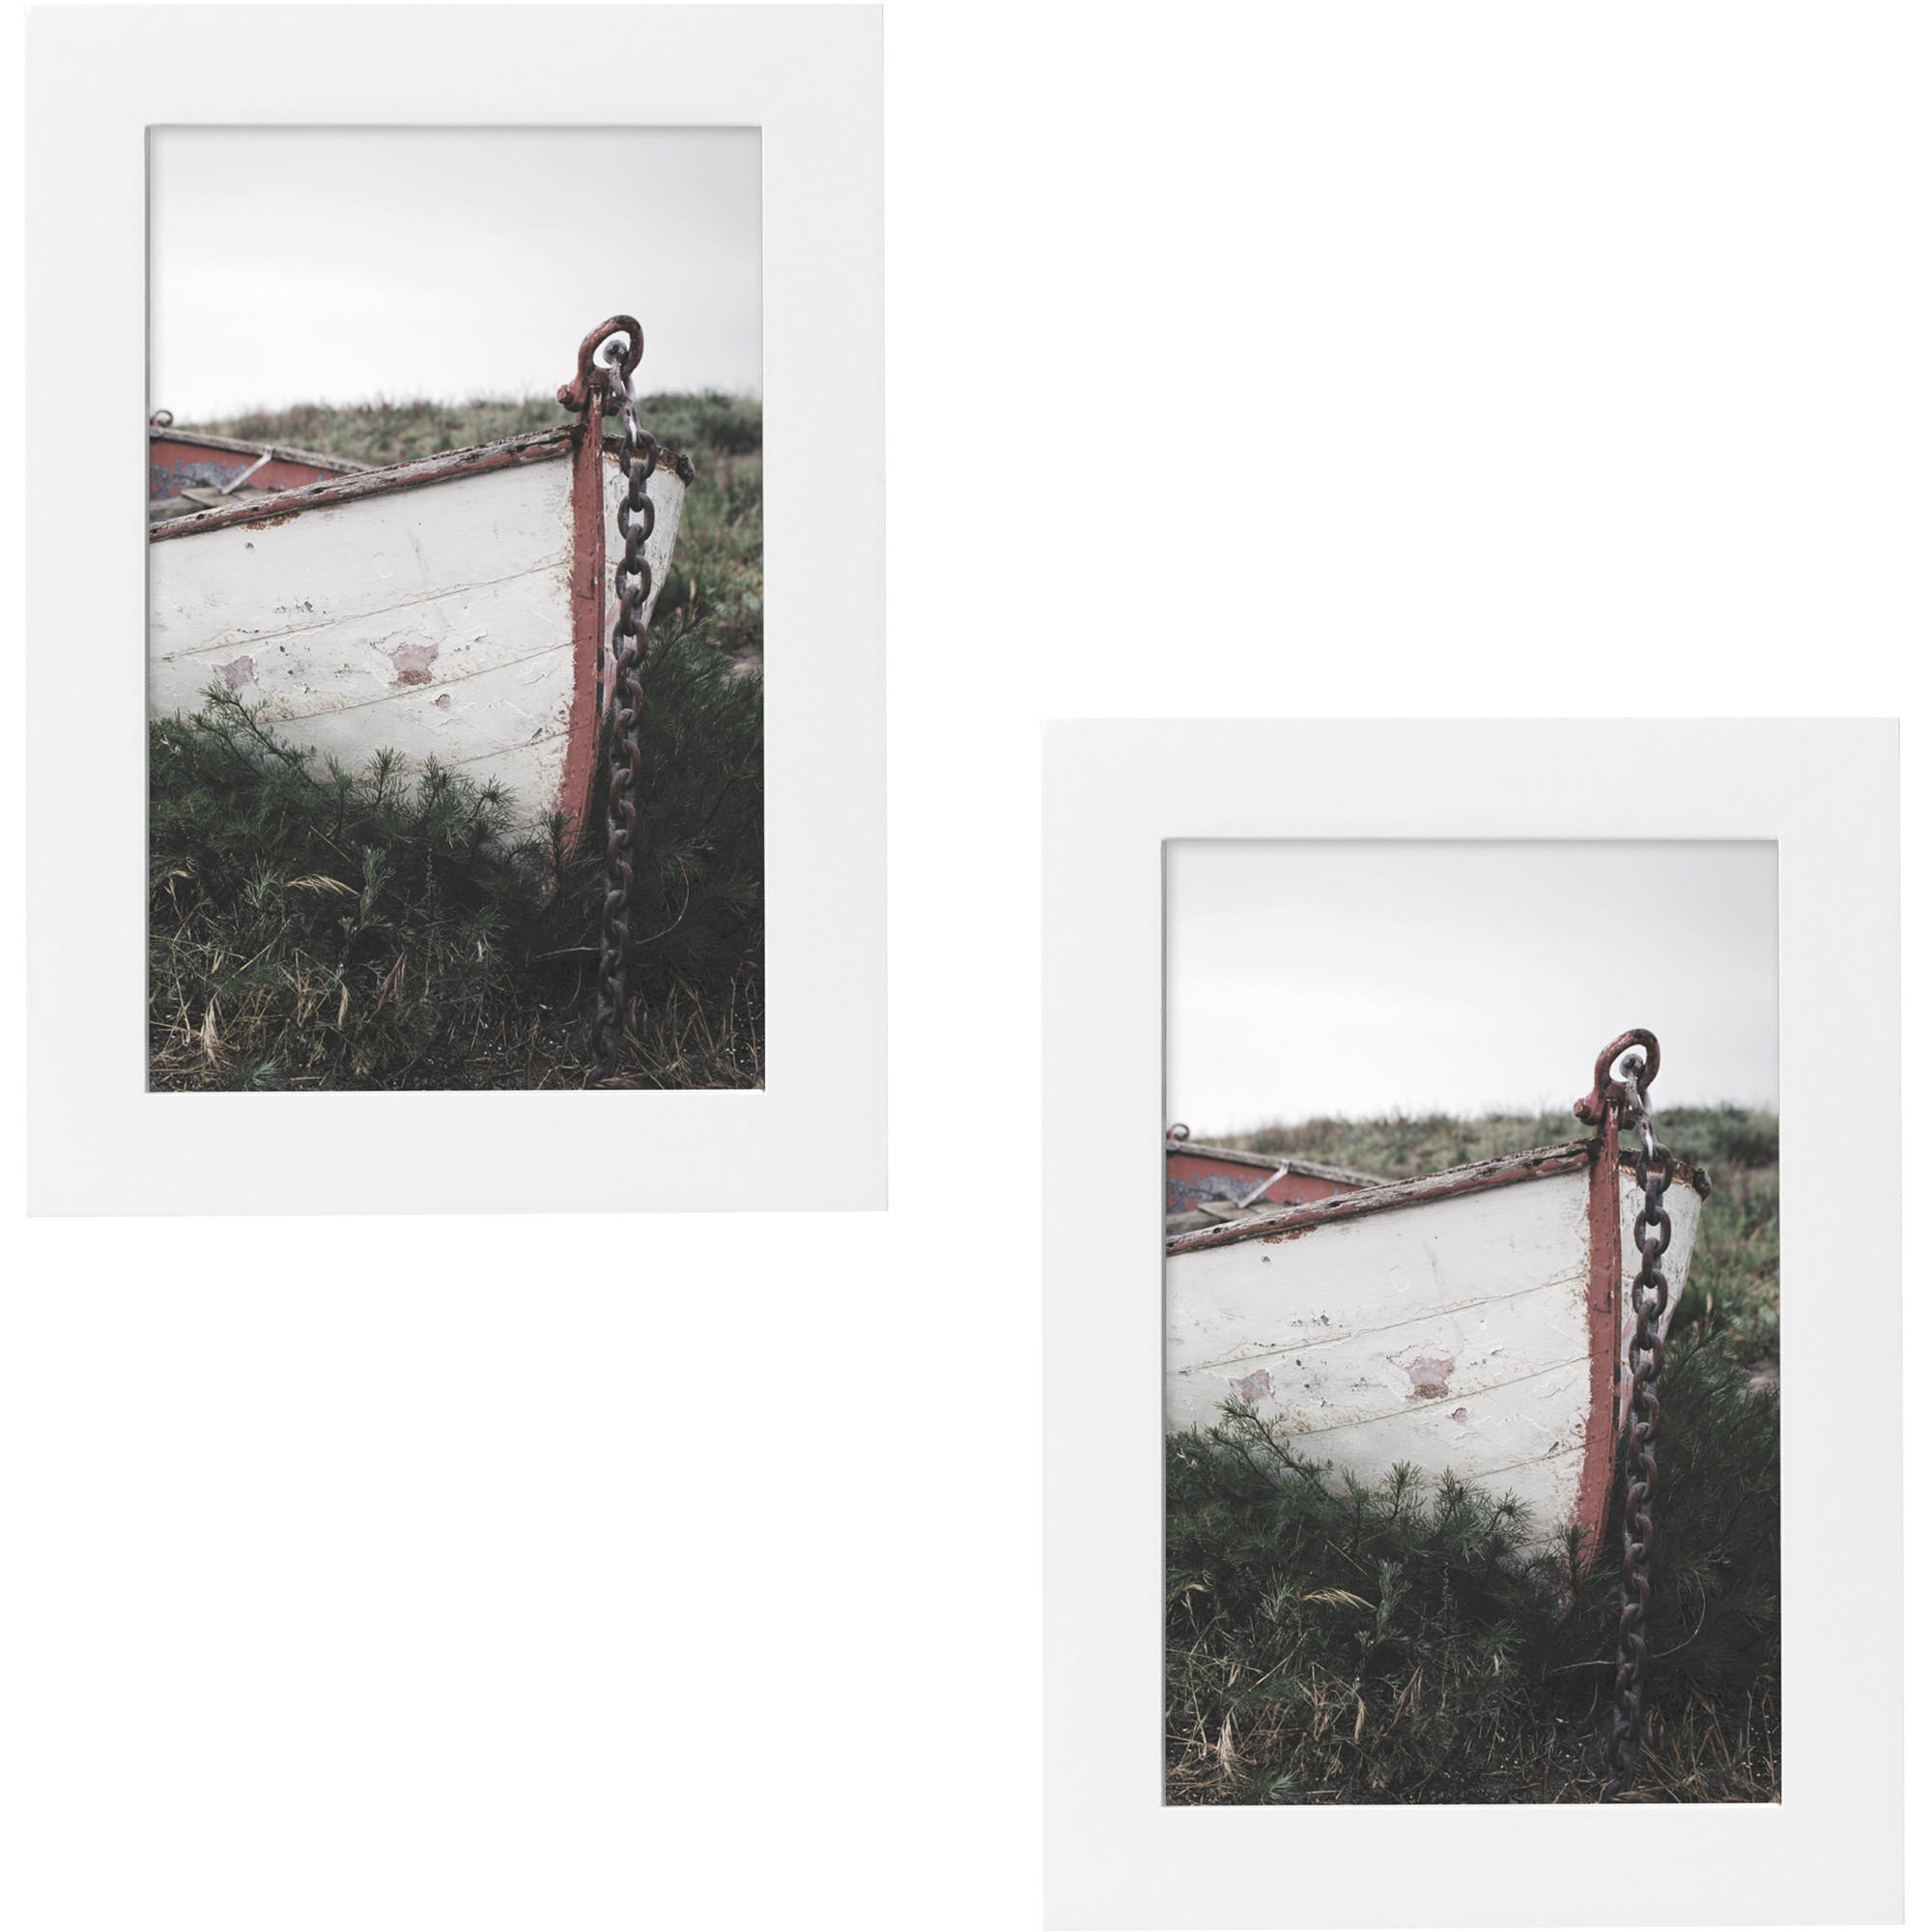 "Better Homes and Gardens Gallery 4"" x 6"" (10.16 cm x 15.24 cm) Picture Frame, White, Set of 2"